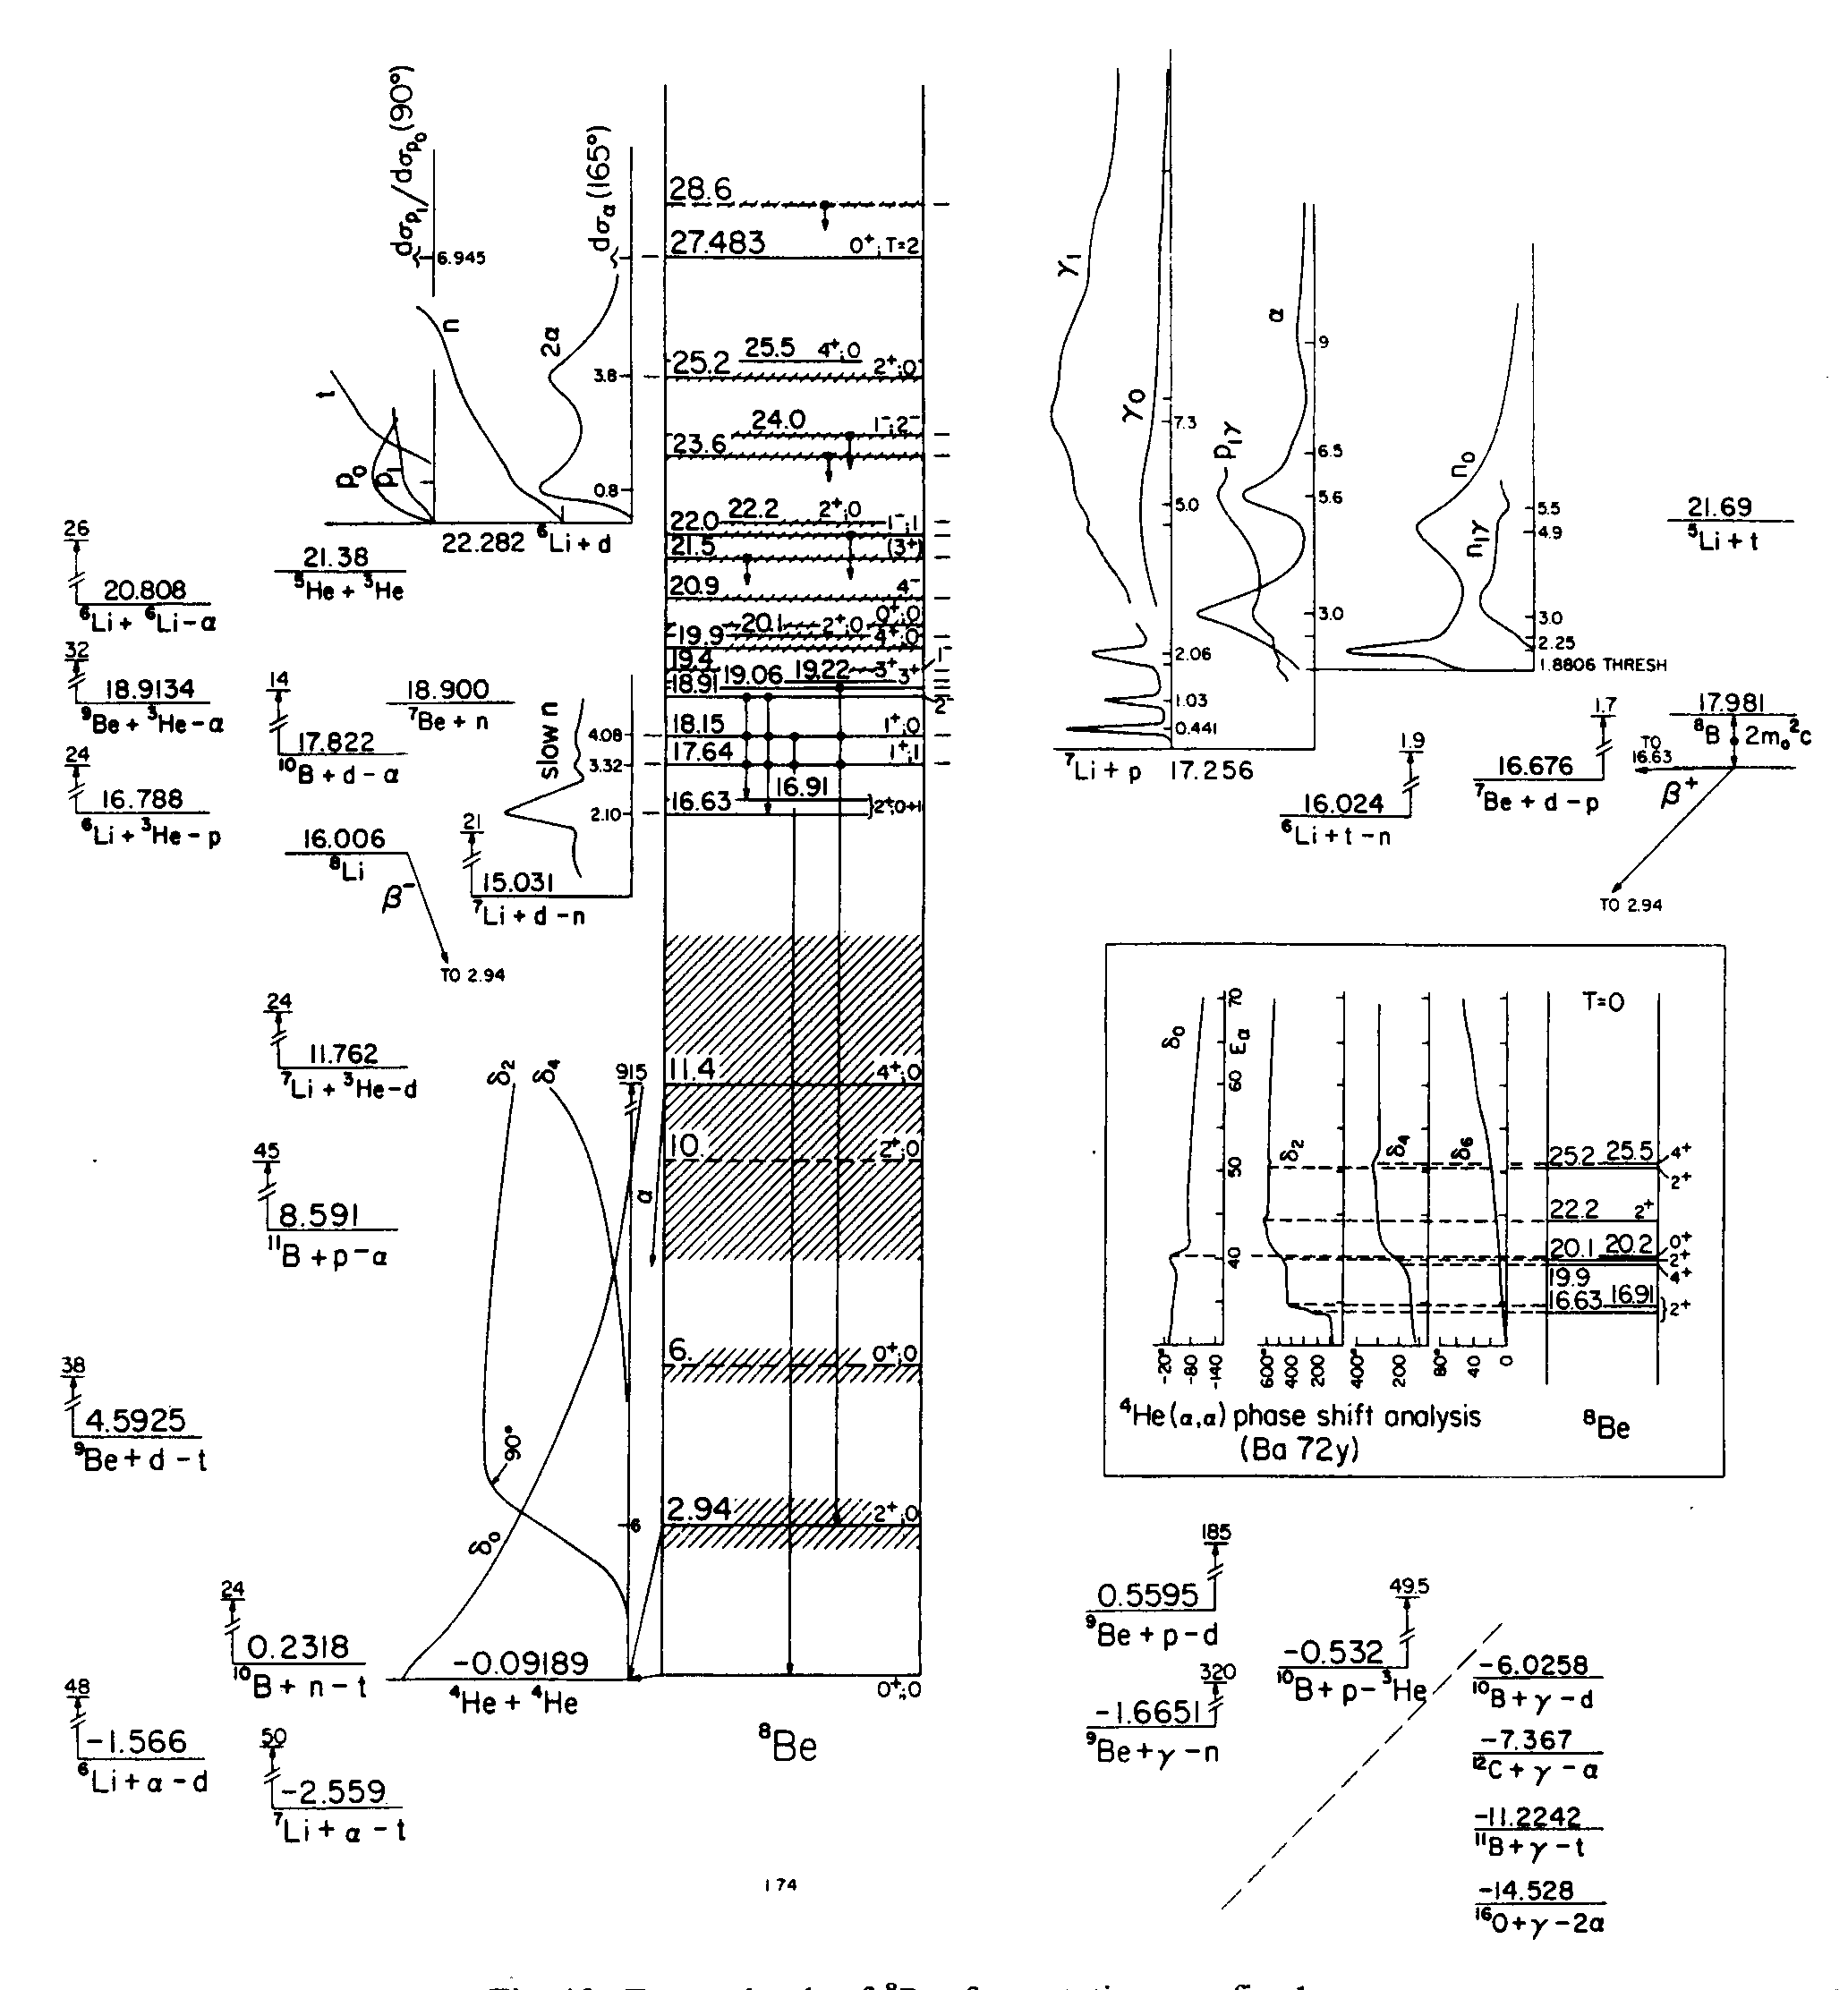 physics energy flow diagram 1967 chevelle wiring nuclear based on the above showin